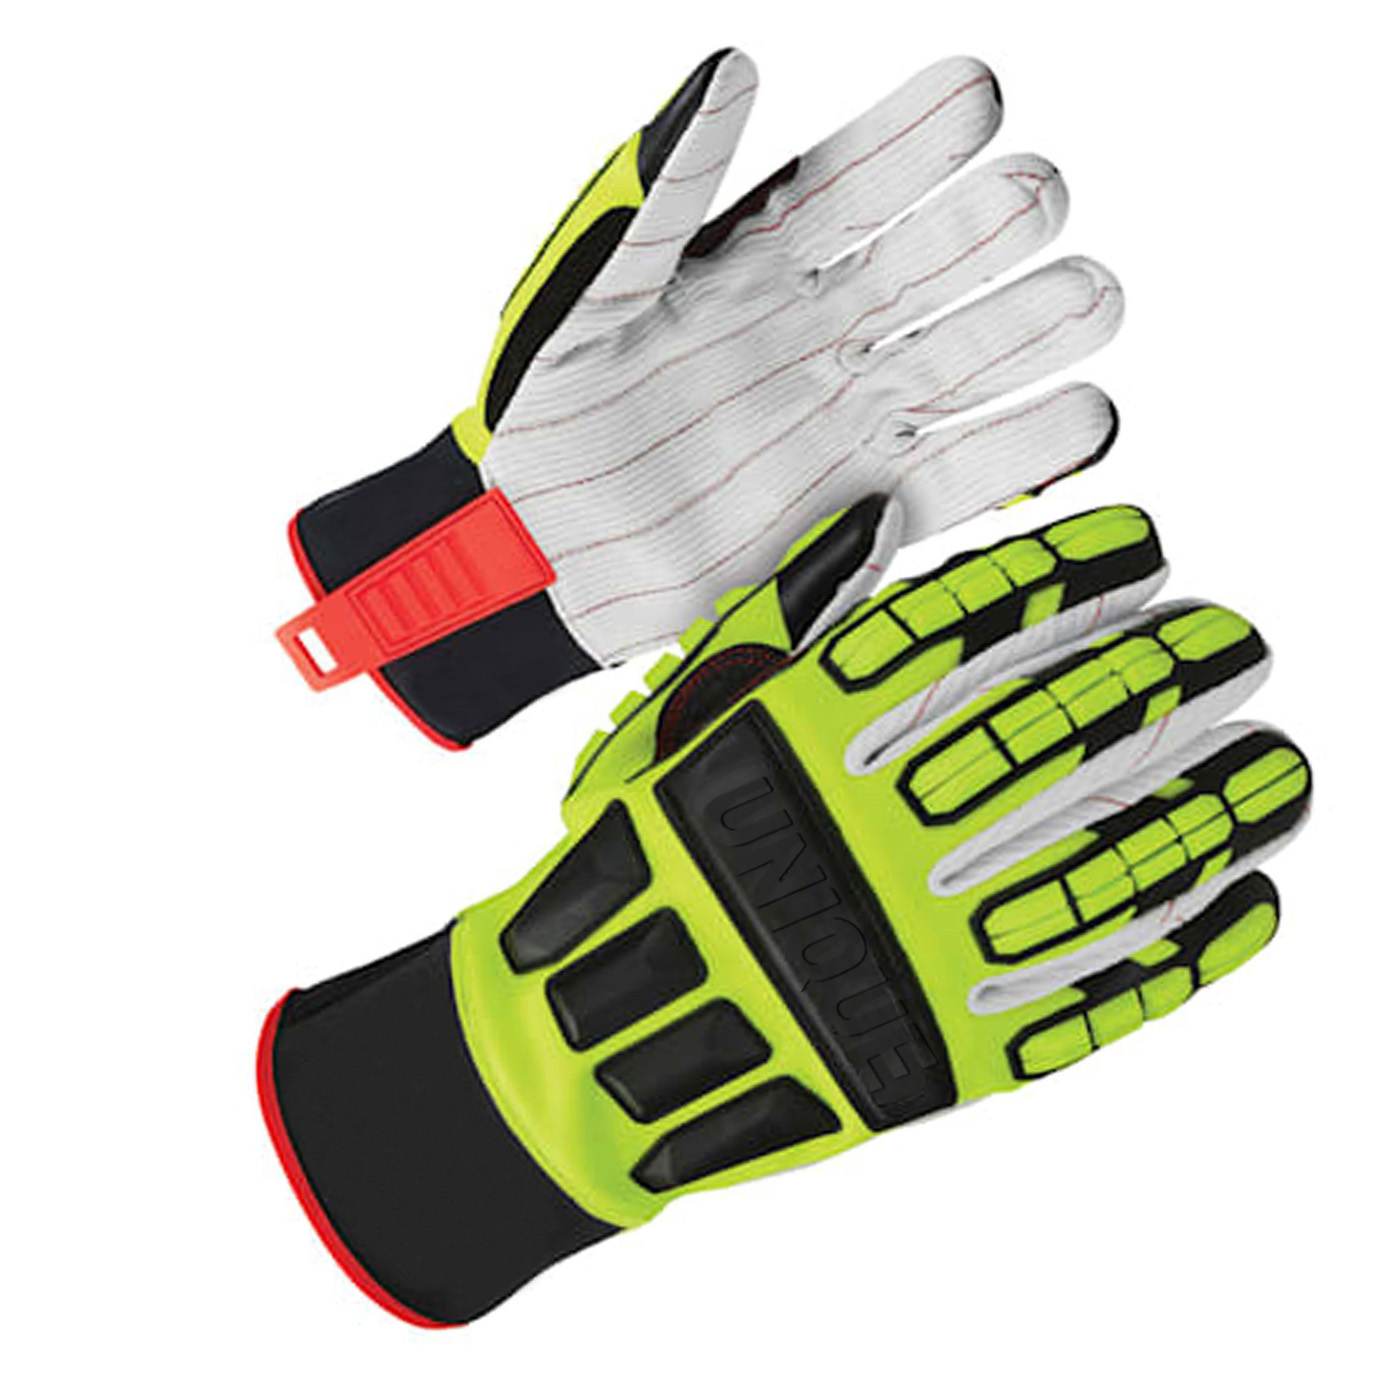 Cotton corded palm with impact protection